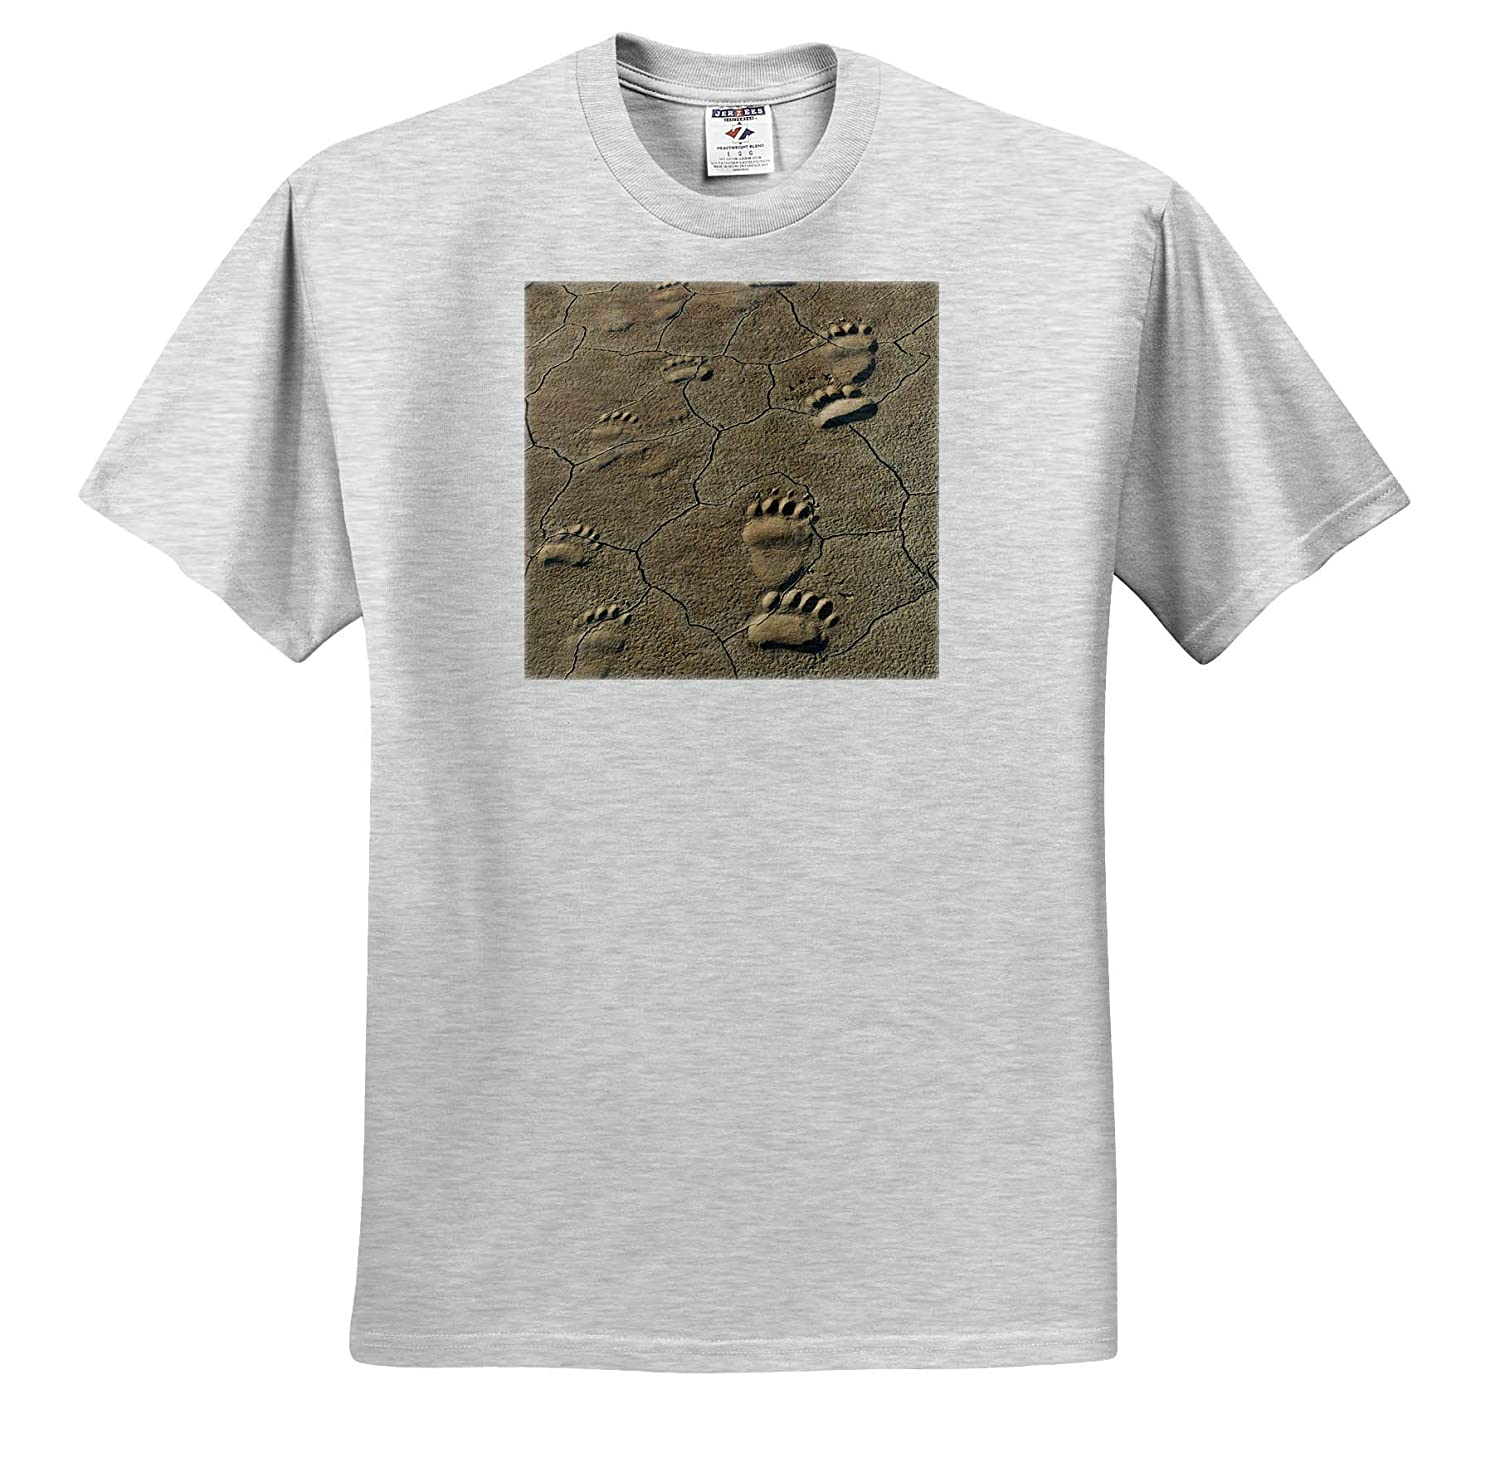 ts/_314478 3dRose Danita Delimont - Adult T-Shirt XL Bears Footprints of Adult and cub Coastal Grizzly Bears in Alaska